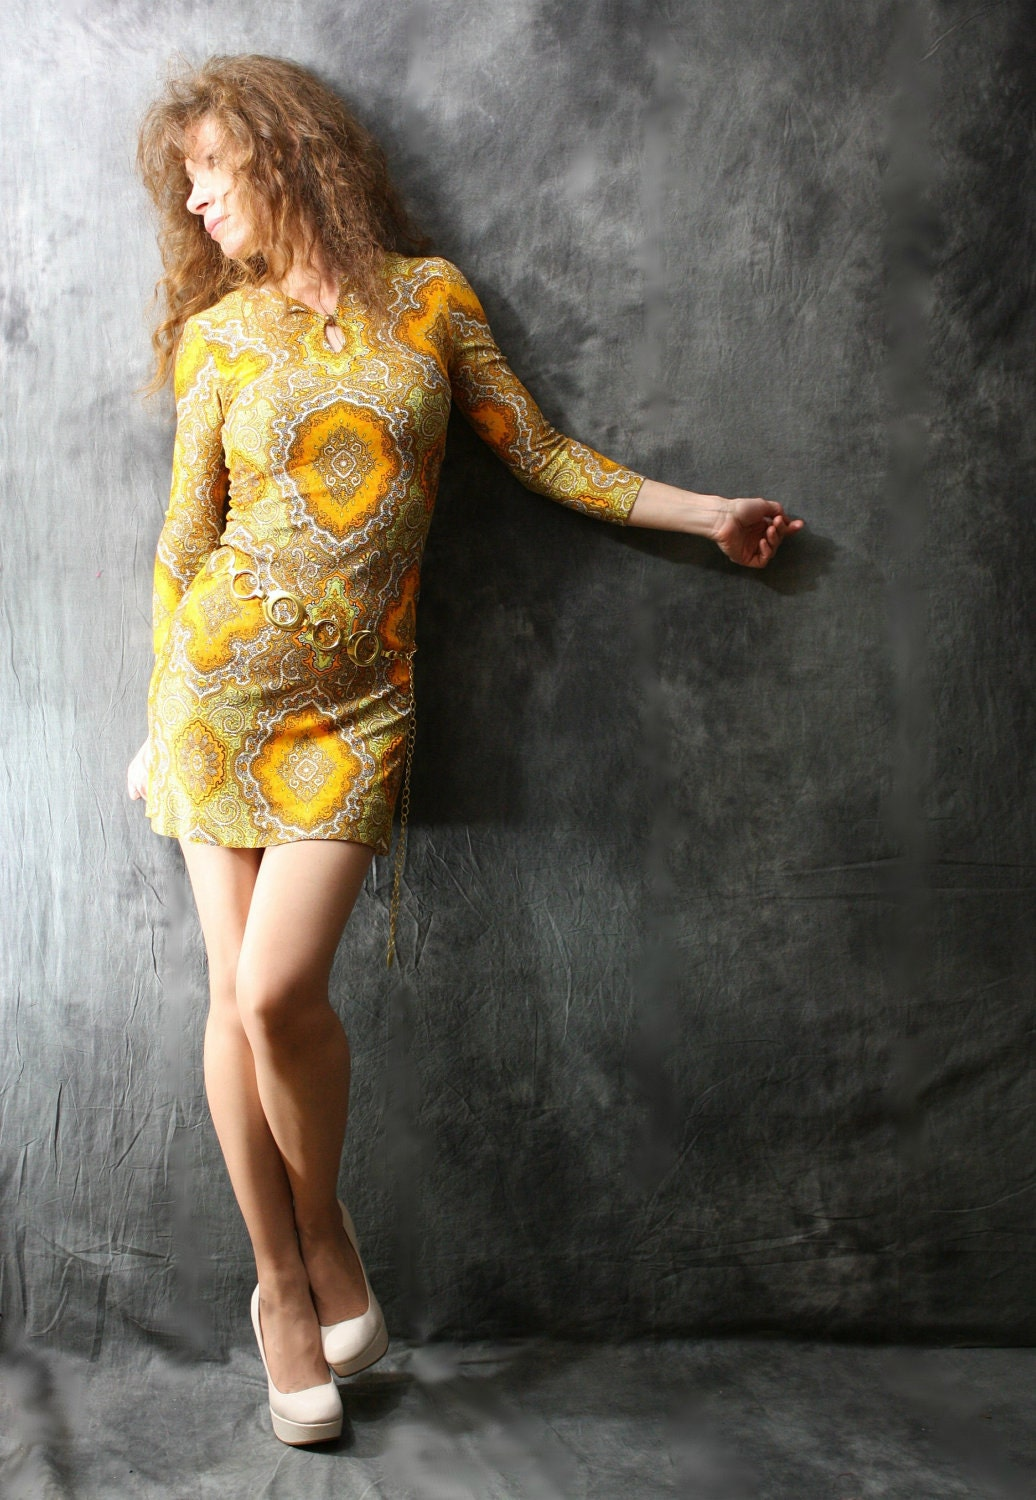 Vintage 60s Psychedelic Paisley BodyCon Go Go Dress by Helen Whiting